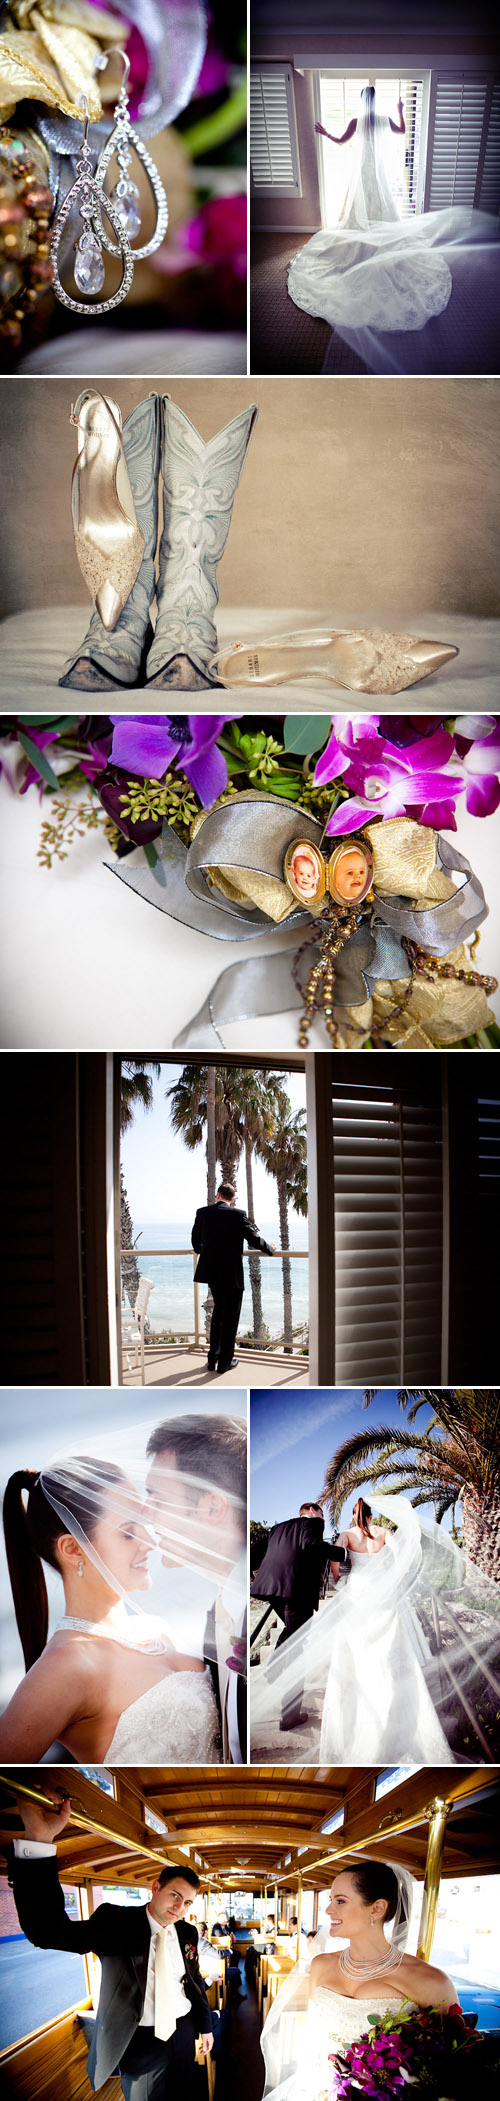 Laguna Beach art gallery real wedding, images by Callaway Gable Photography